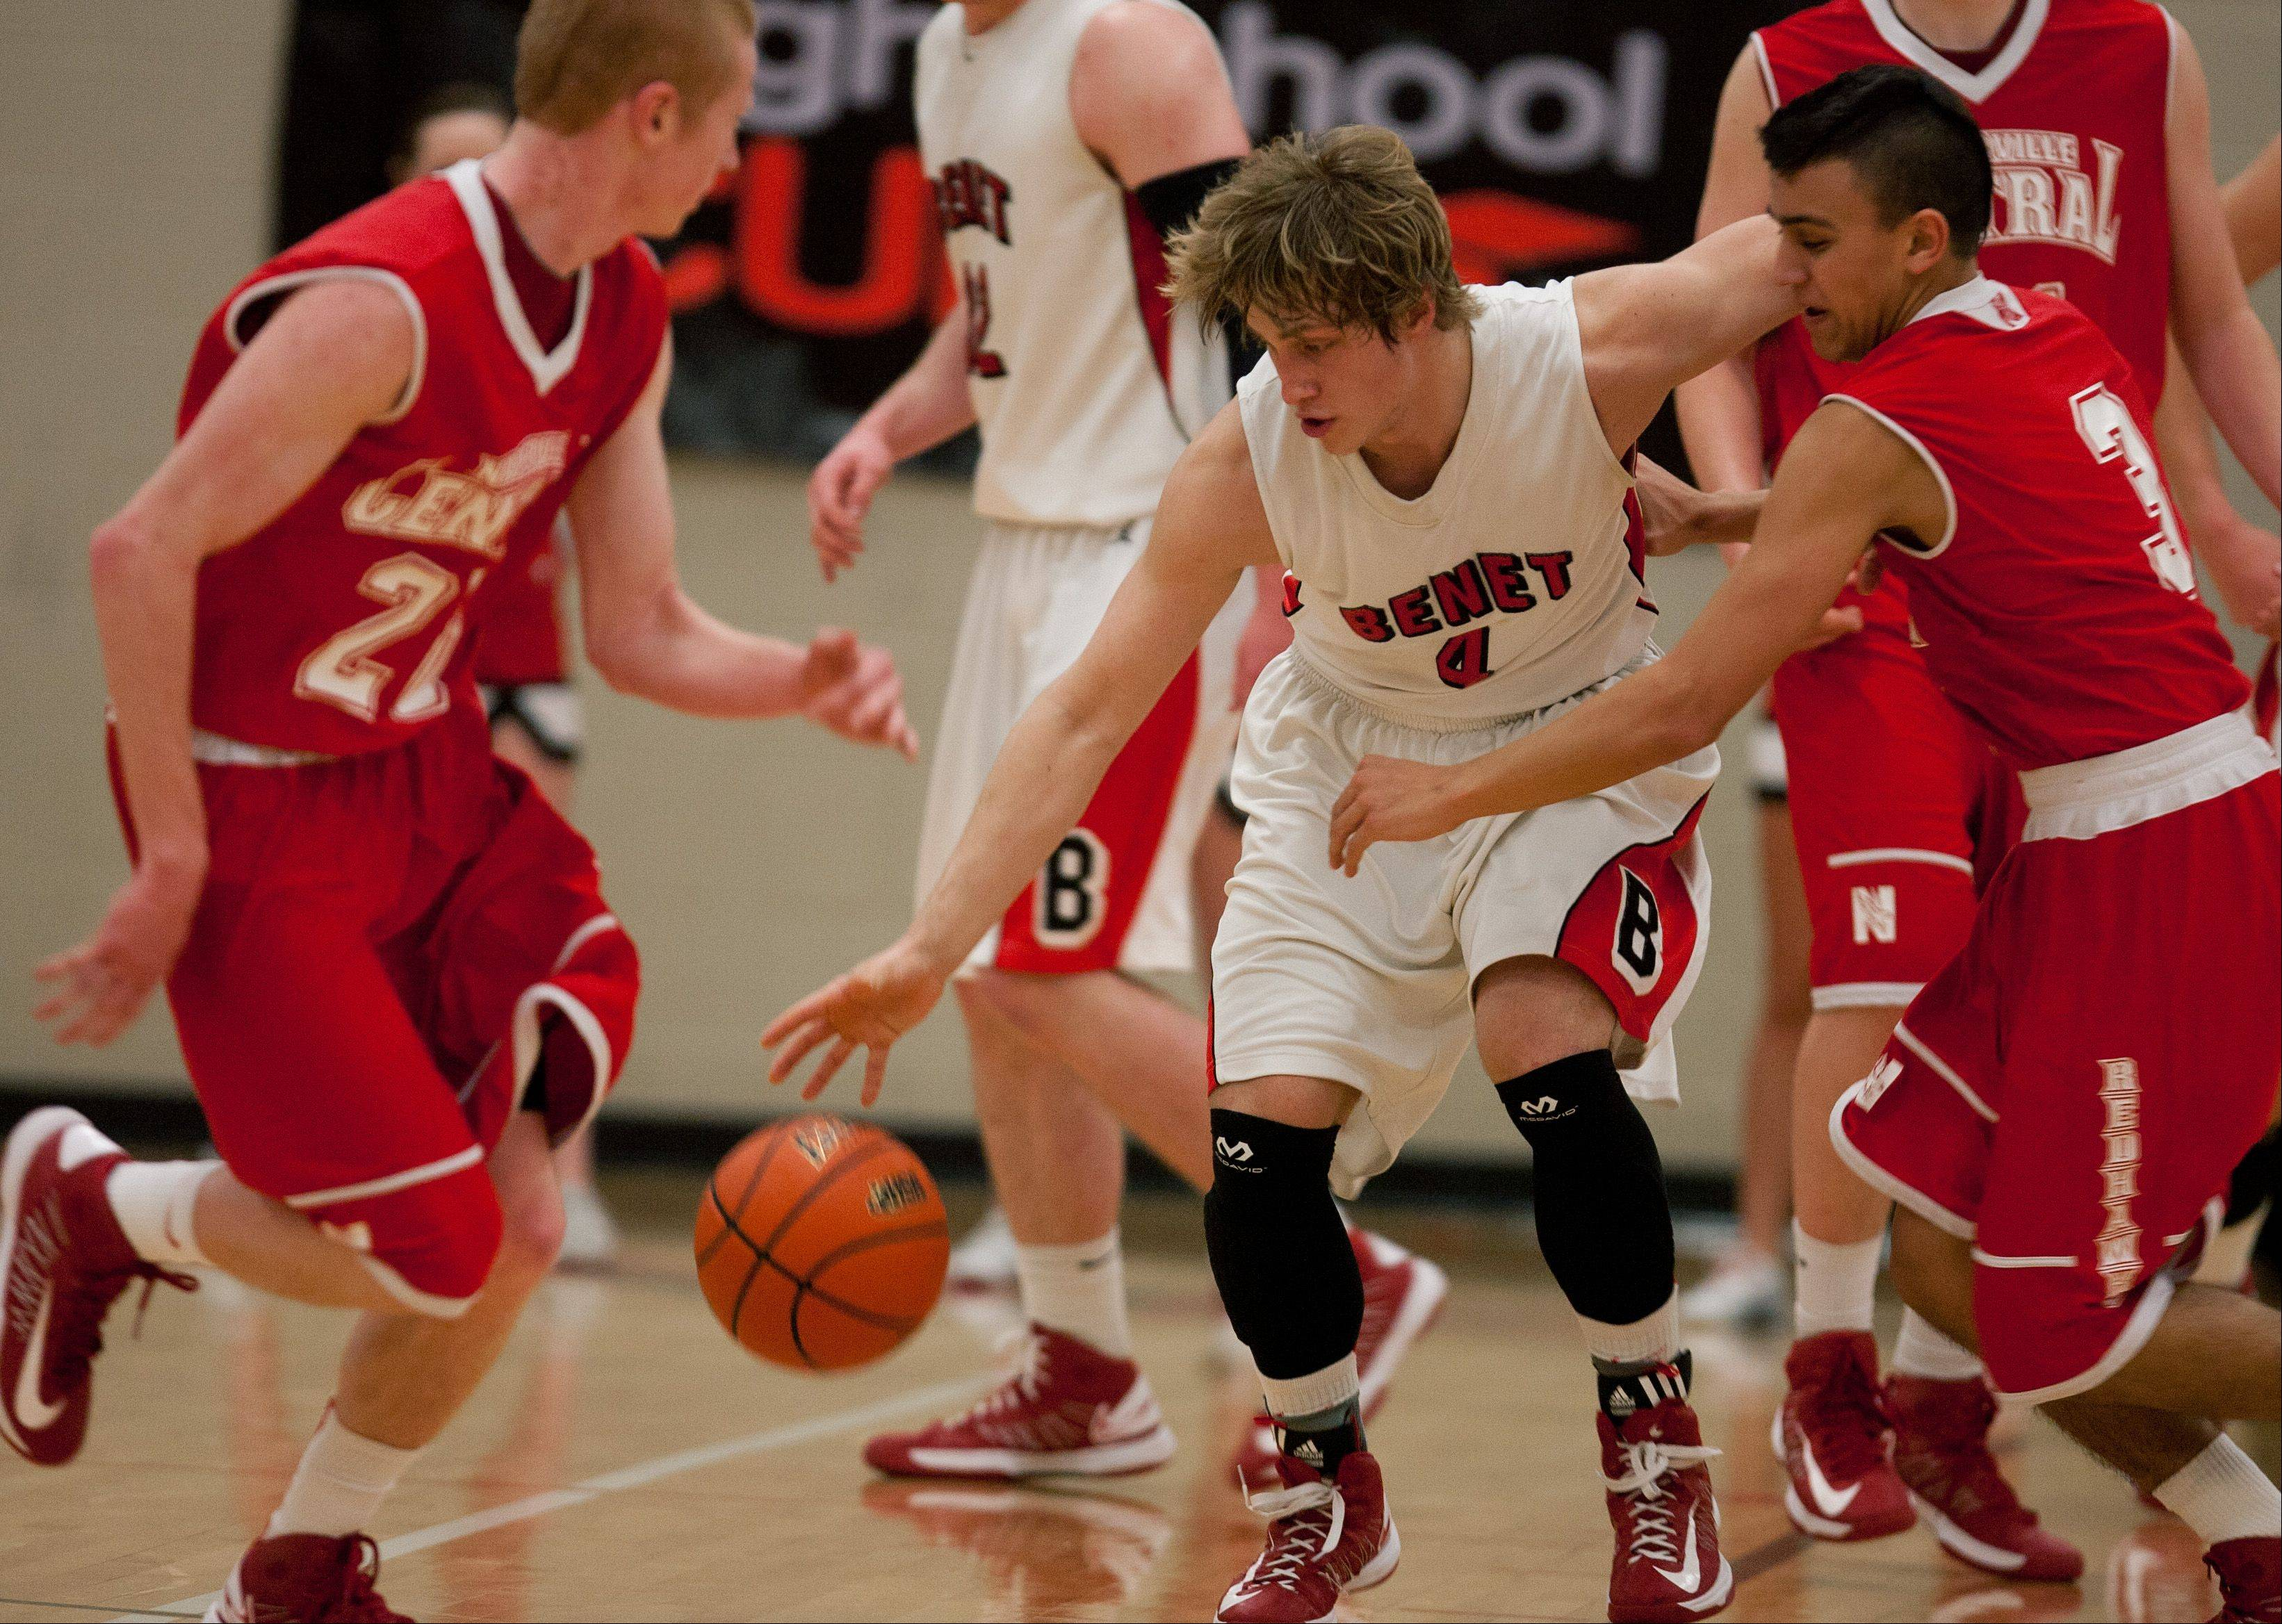 Benet's Eddie Eshoo dribbles past Naperville Central's Nicky Lopez, right.